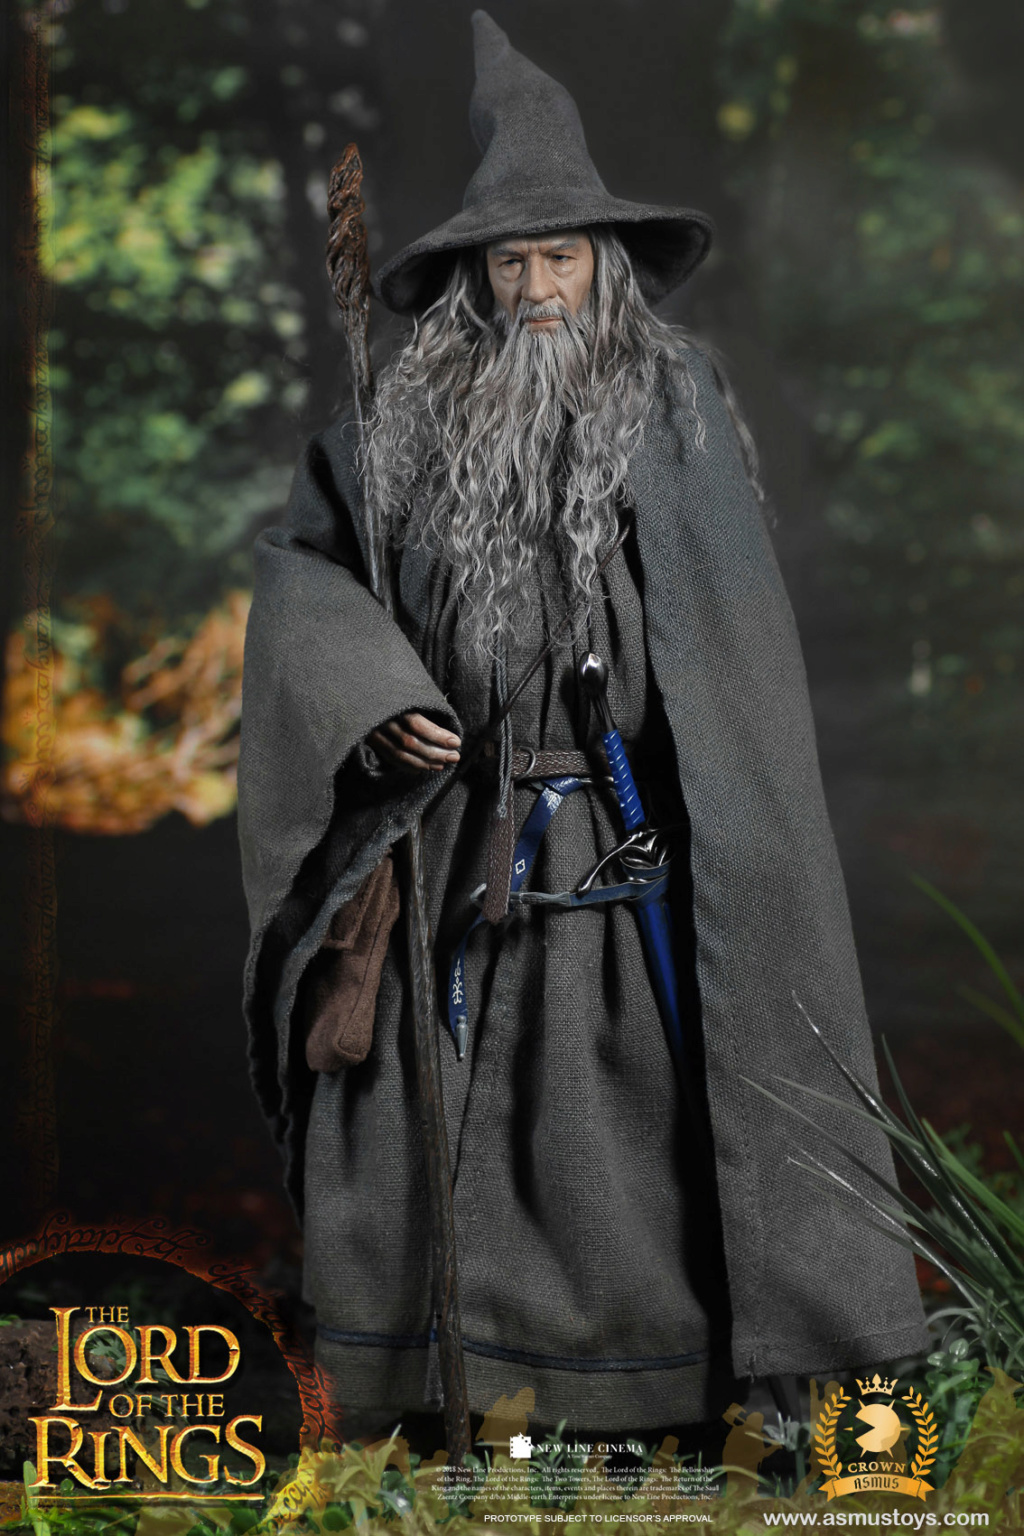 NEW PRODUCT: ASMUS TOYS THE CROWN SERIES : GANDALF THE GREY 1/6 figure 11173